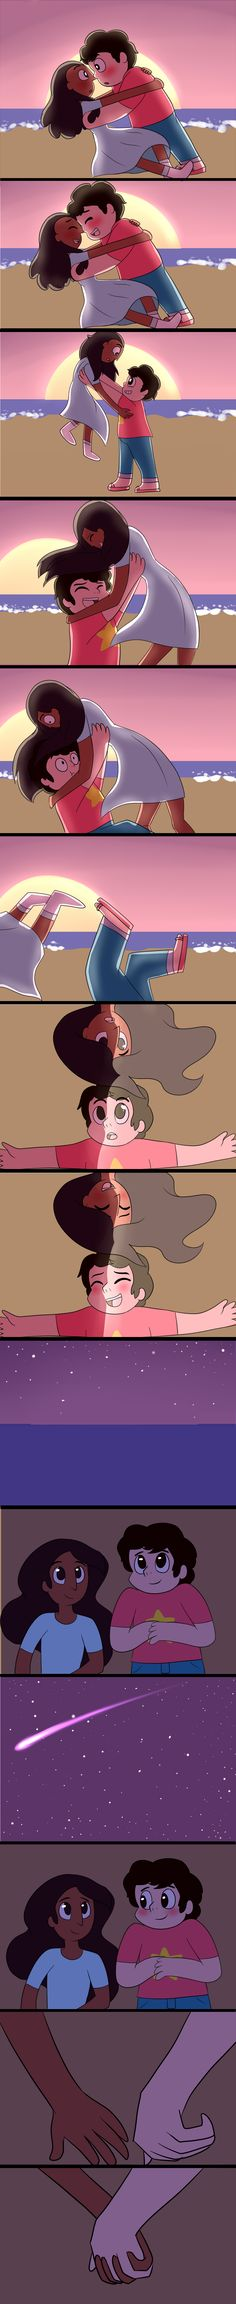 http://bbg4ya.deviantart.com/art/Steven-x-Connie-fan-comic-526591565